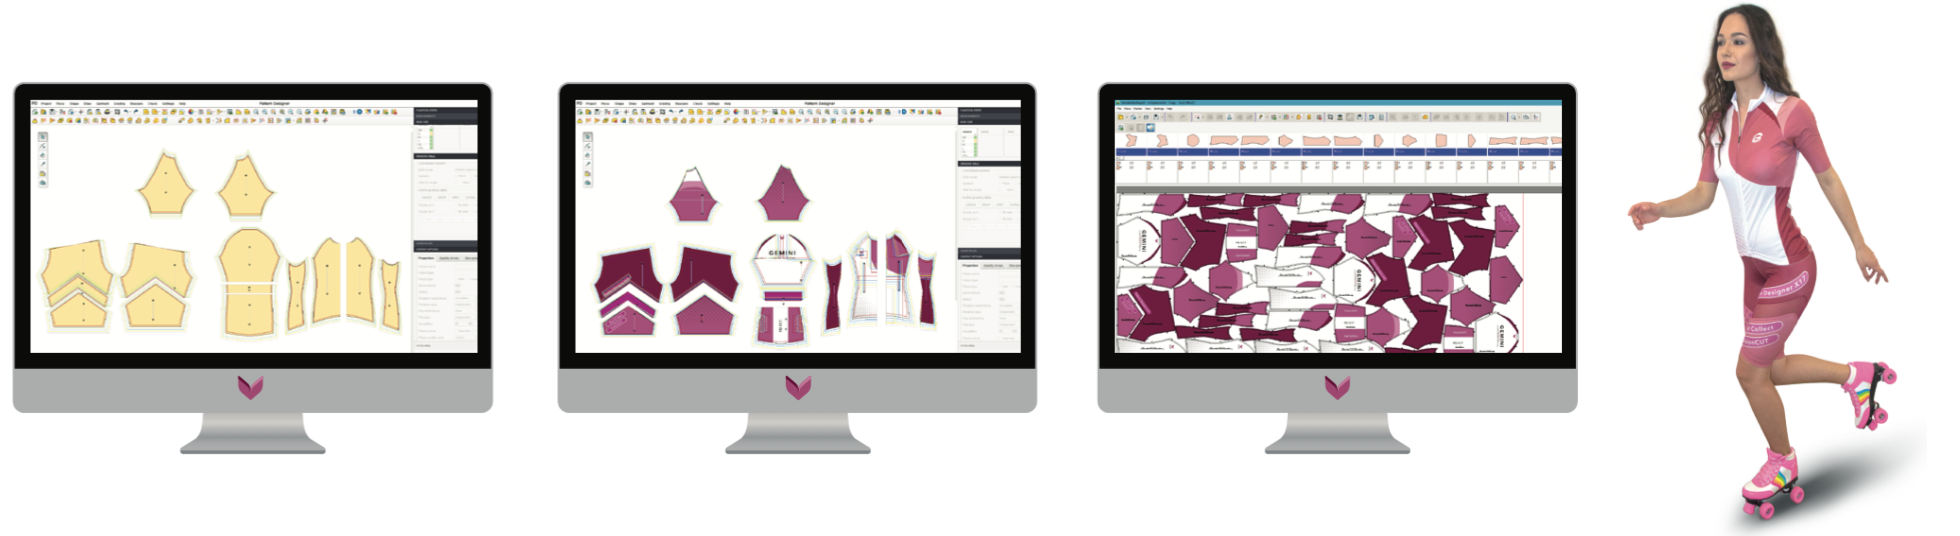 Automation enables profitable mass customization. Click on the image to learn more.